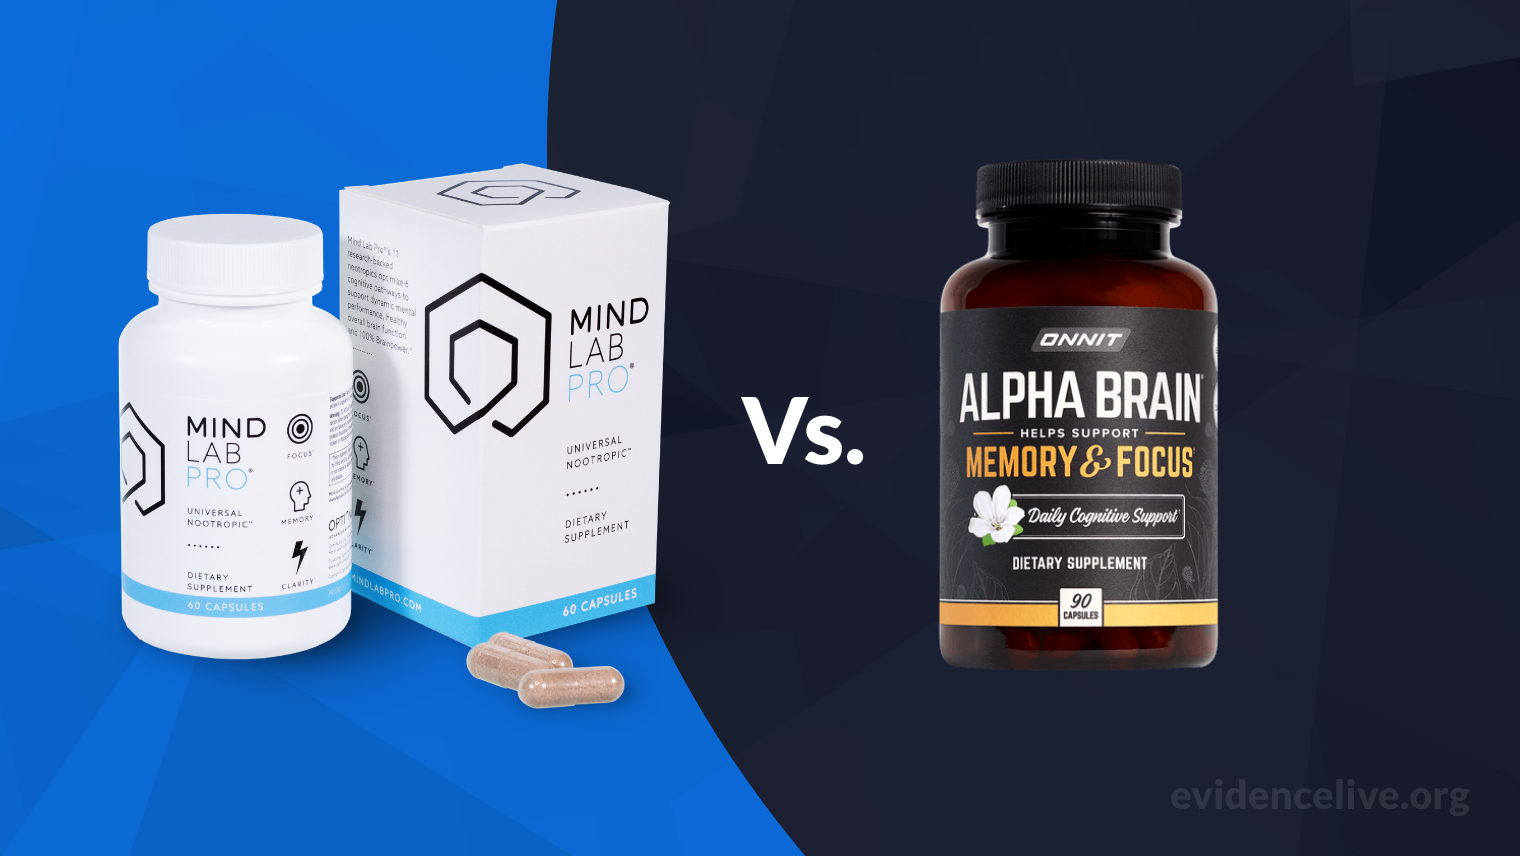 Mind Lab Pro vs. Alpha Brain: Which Nootropic Is Better?